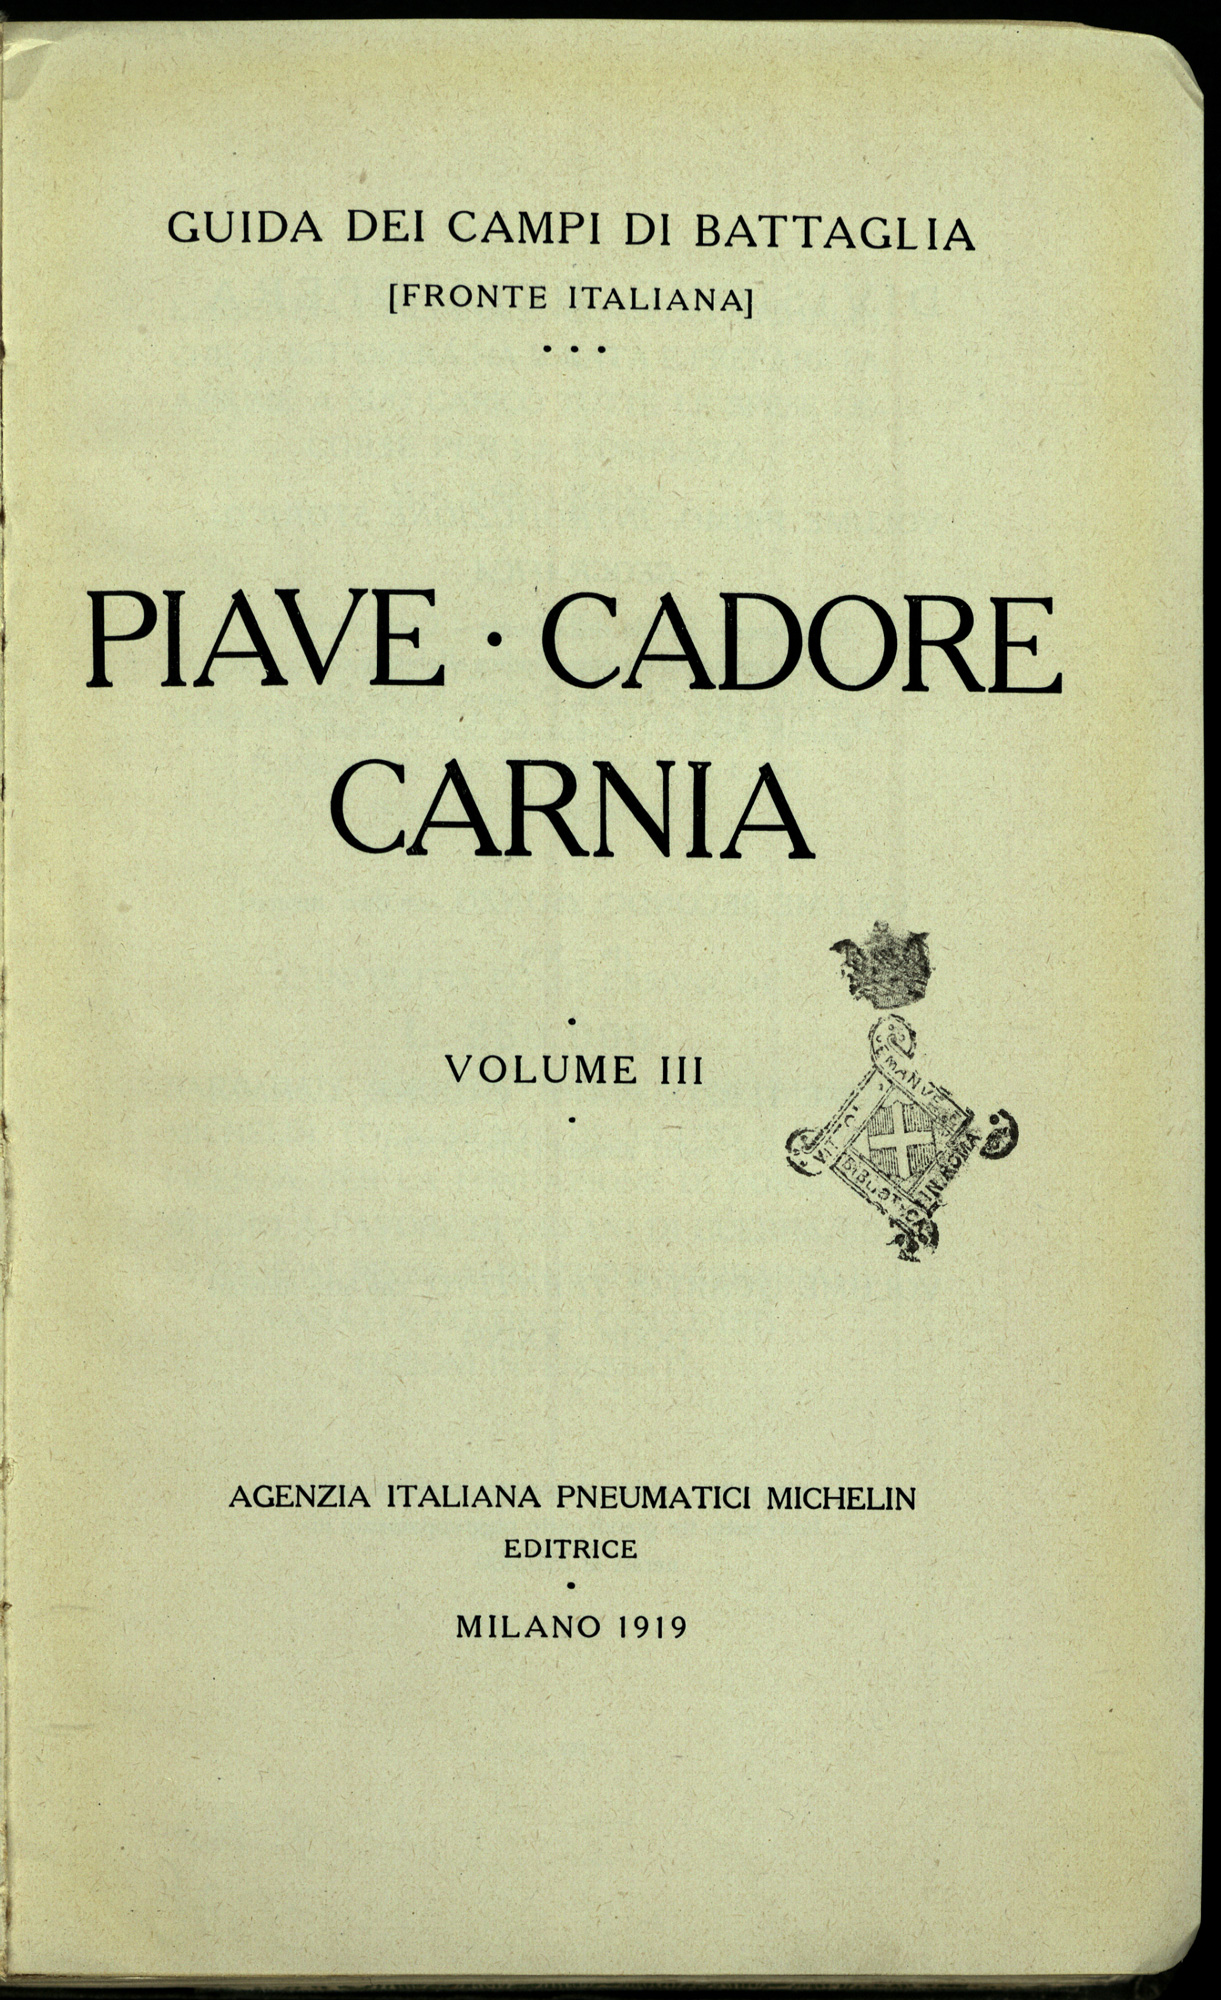 Guide to the battlefields. Italian front, vol III, Piave-Cadore-Carnia